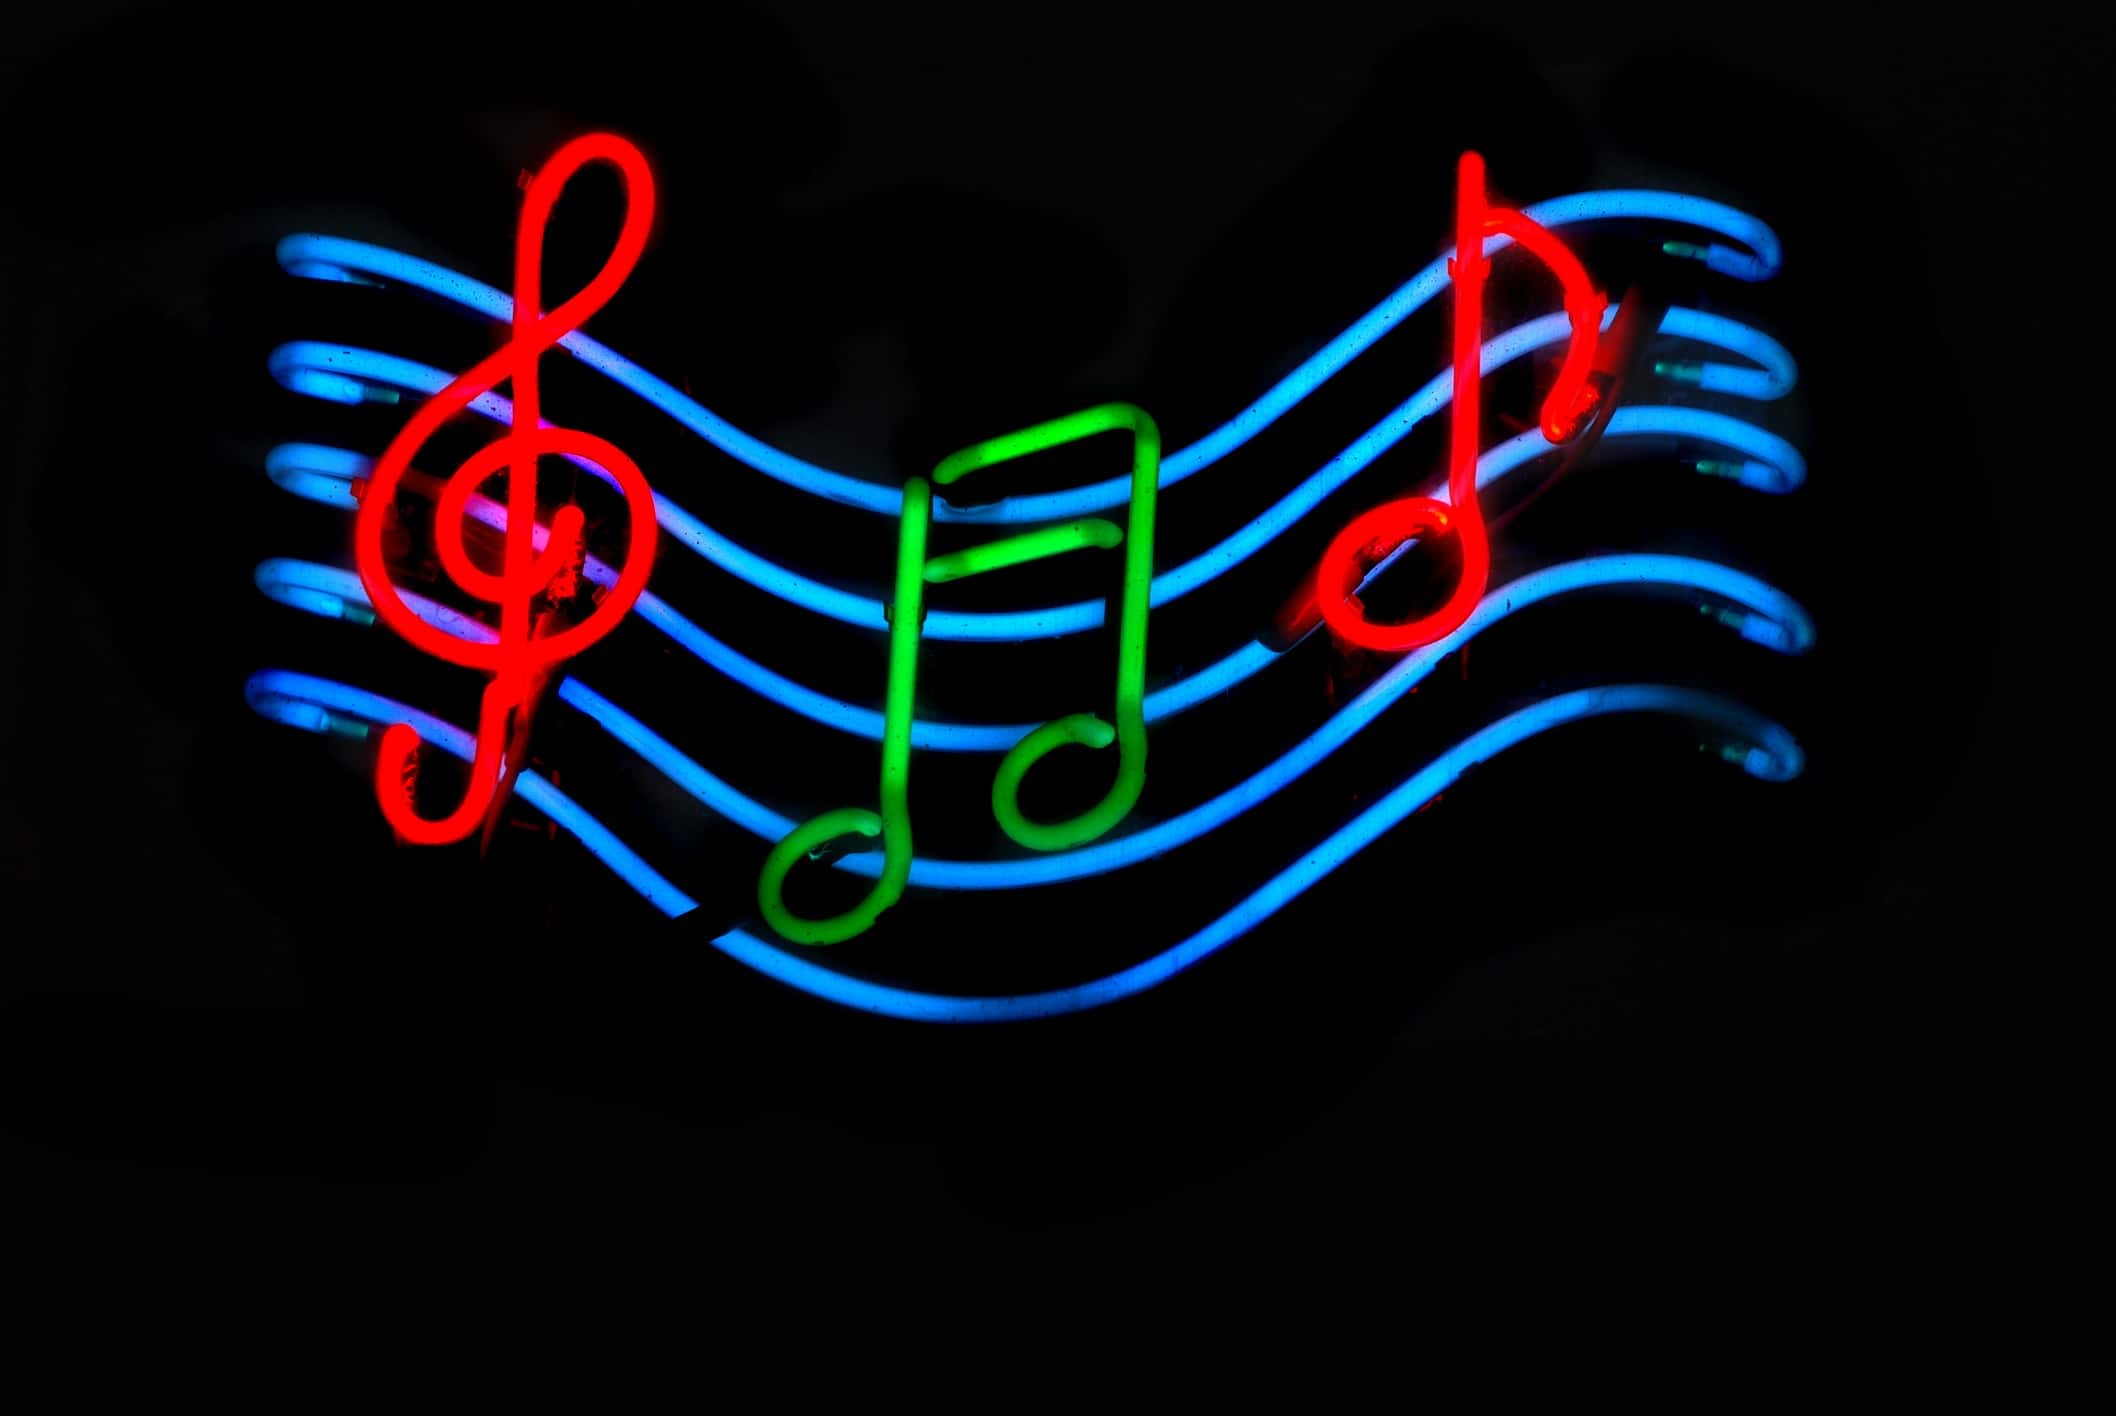 2116x1416 Neon Music Notes Wallpaper #S639CK4